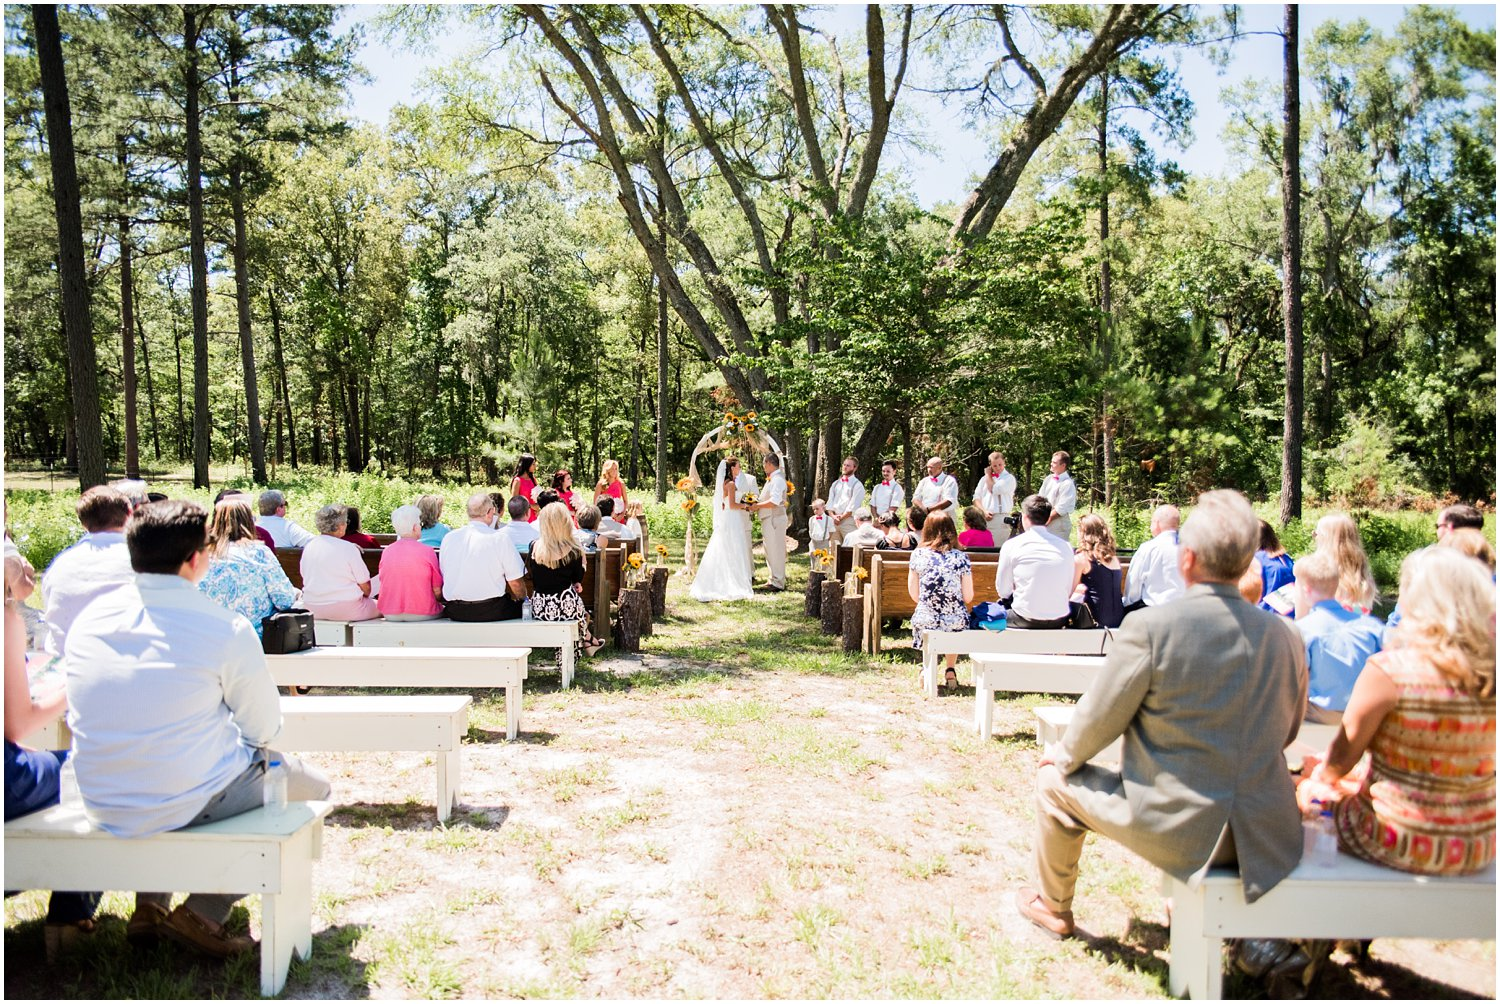 Kyle and Haley Wedding day at Loblolly Rise Plantation, Thomasville Georgia_0042.jpg